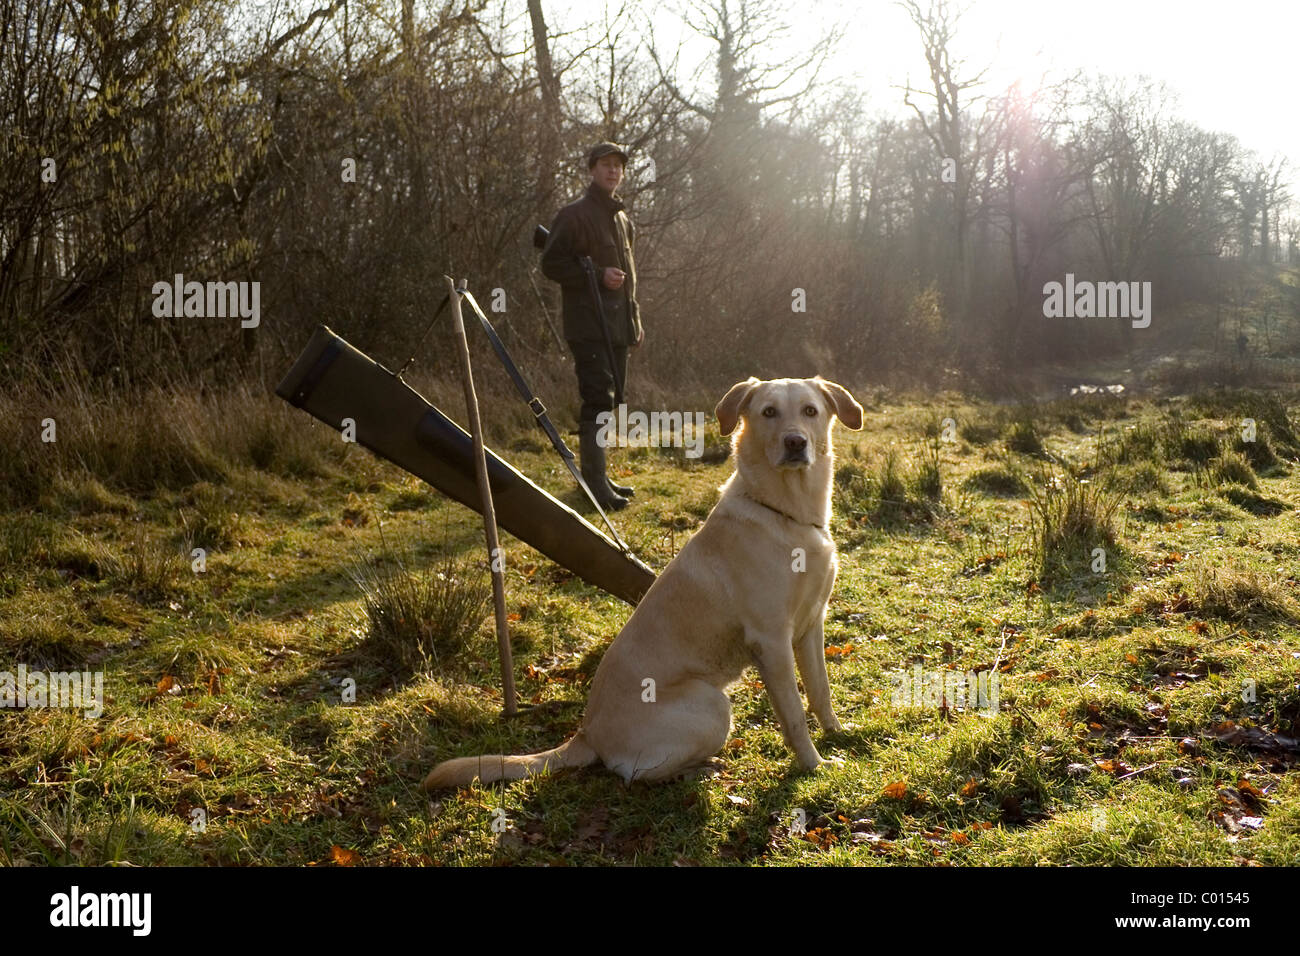 A well trained Labrador gun dog sits obediently awaiting instructions. - Stock Image